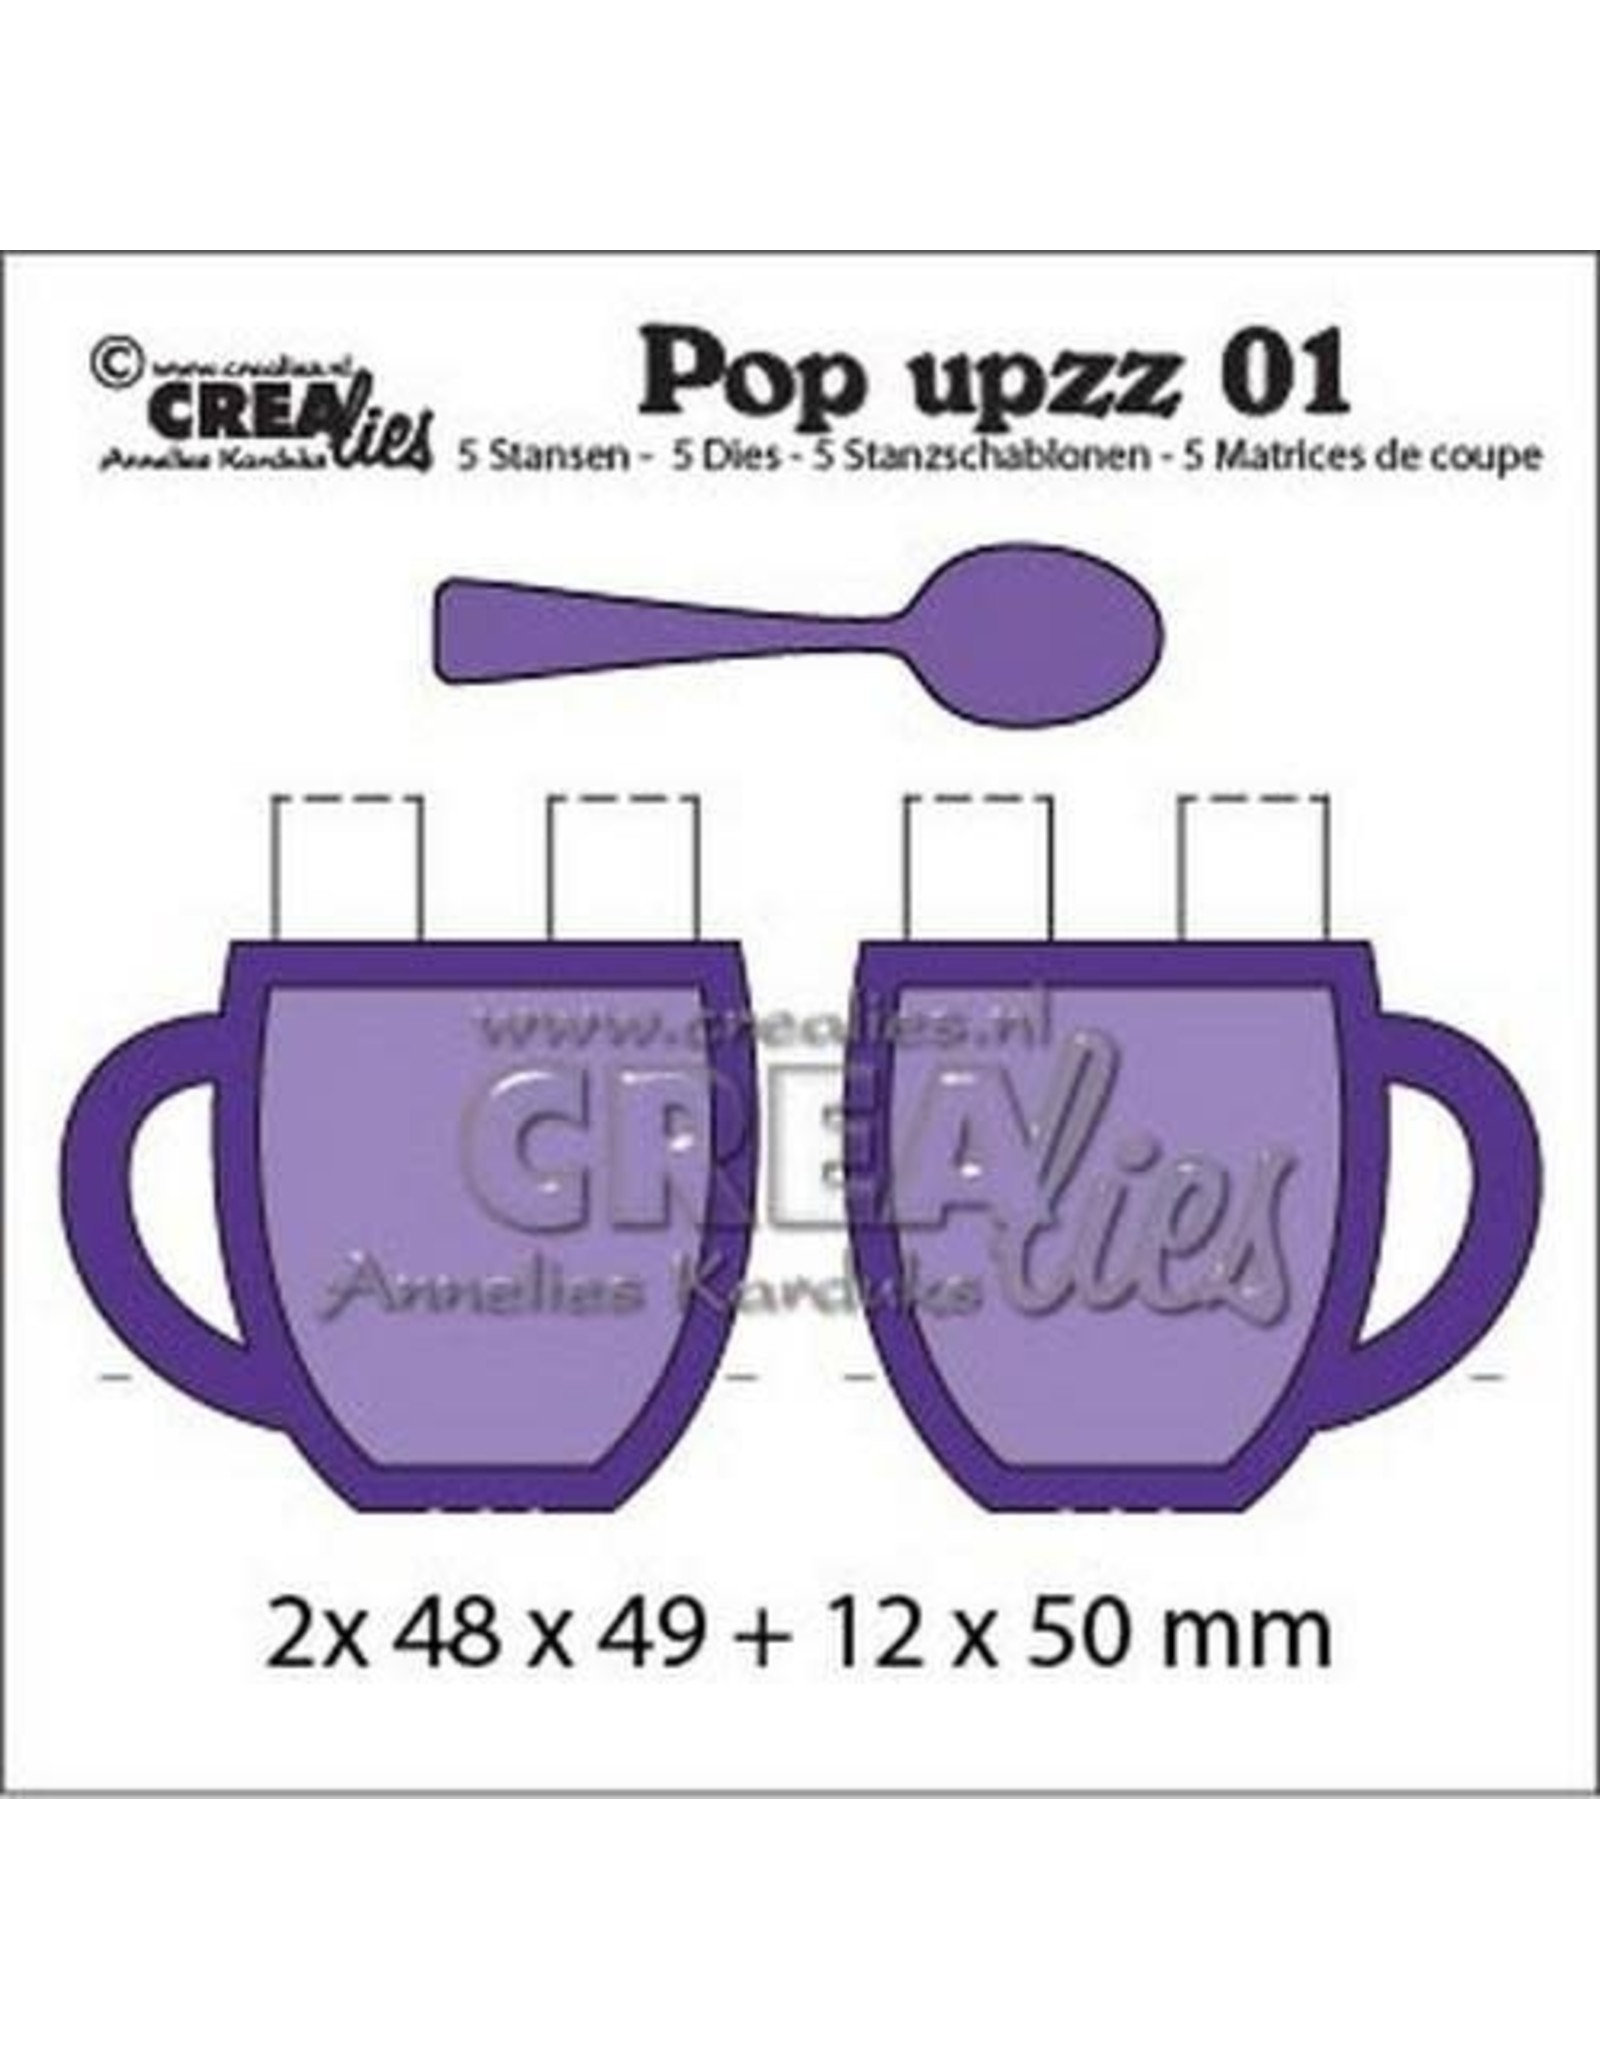 Crealies Crealies Pop upzz 2x pop up mok + lepel